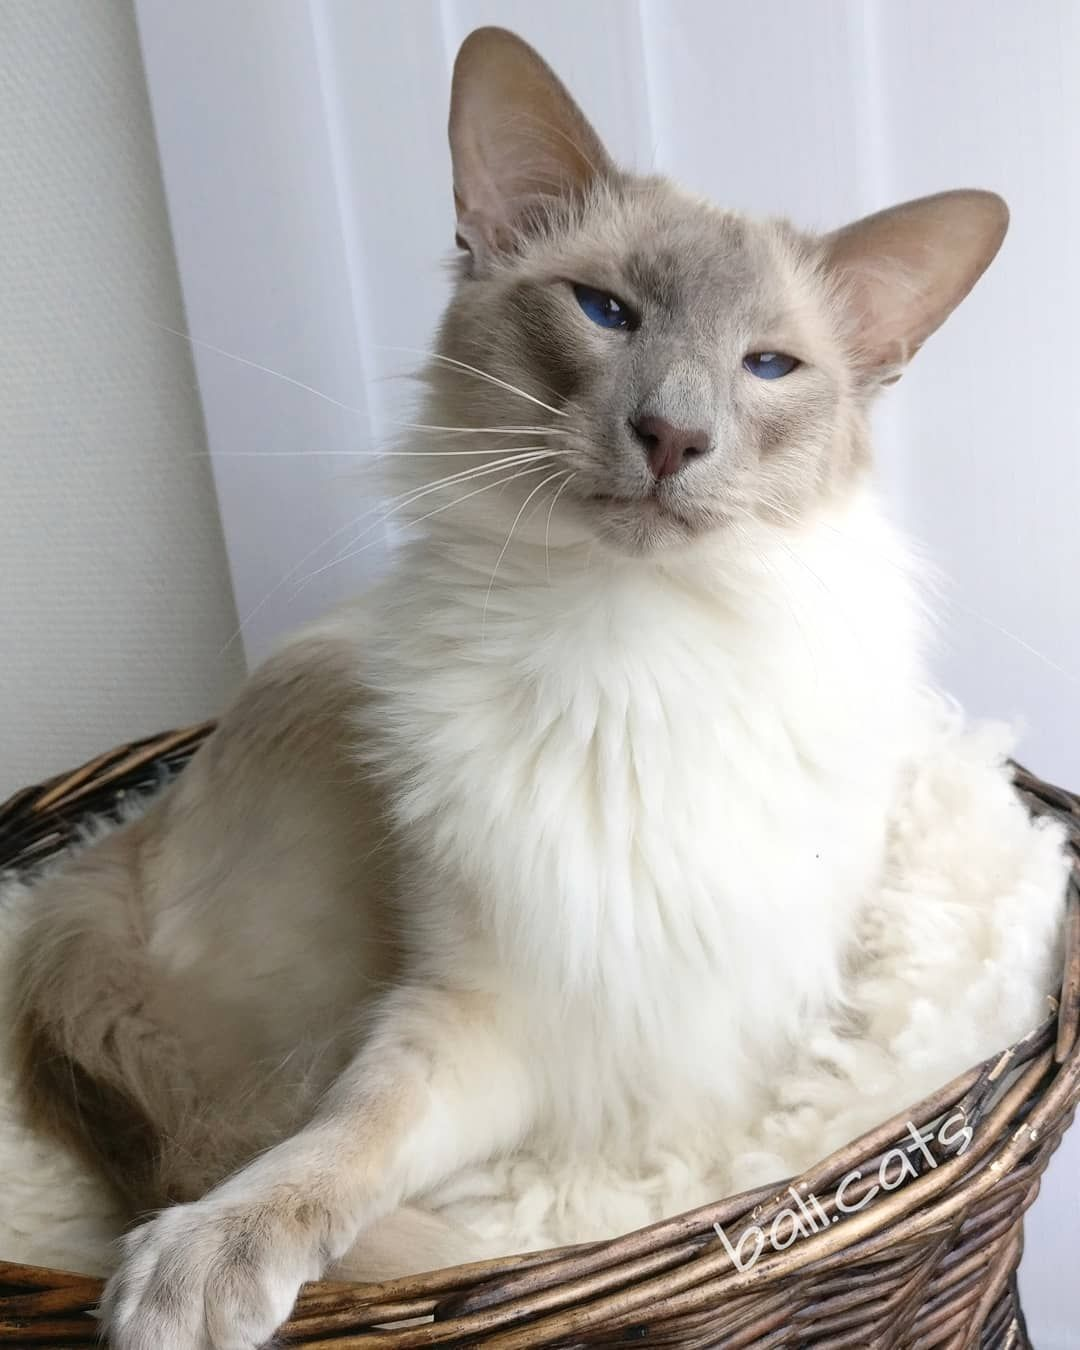 14 Reasons To Love The Balinese Cat Page 2 Of 3 Petpress In 2020 Balinese Cat Cute Cats And Dogs Cats